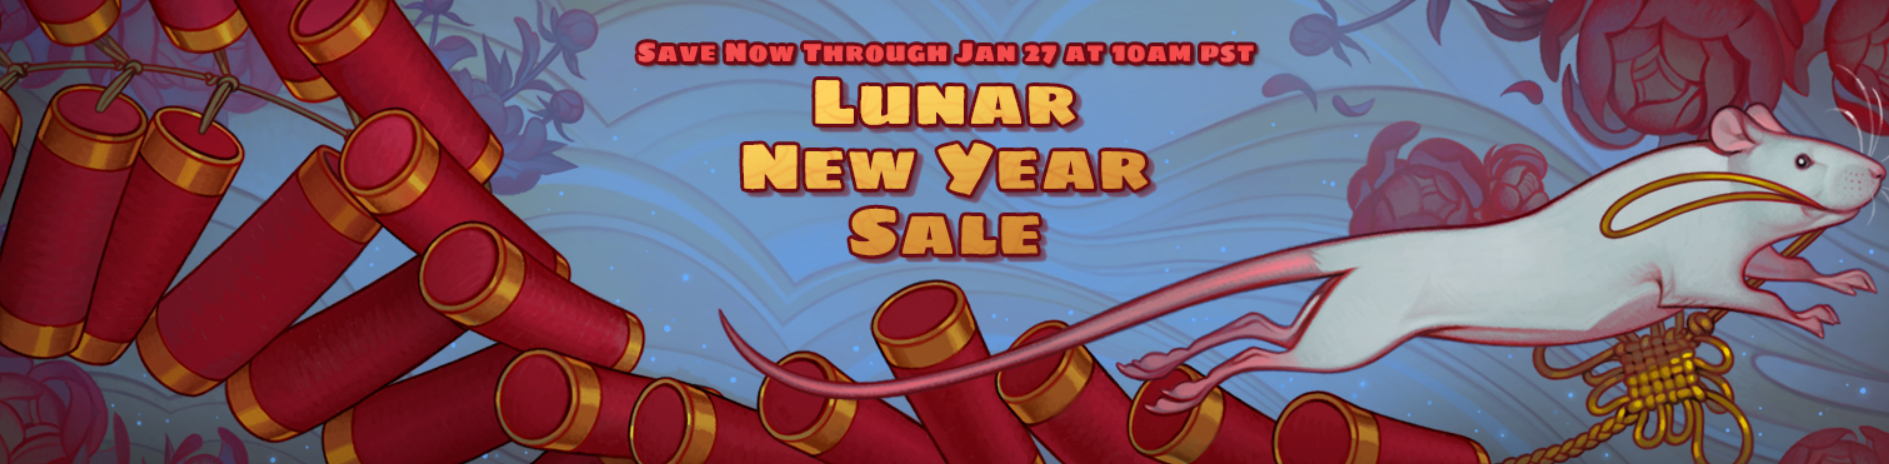 Steam Lunar New Year 2020 Sale